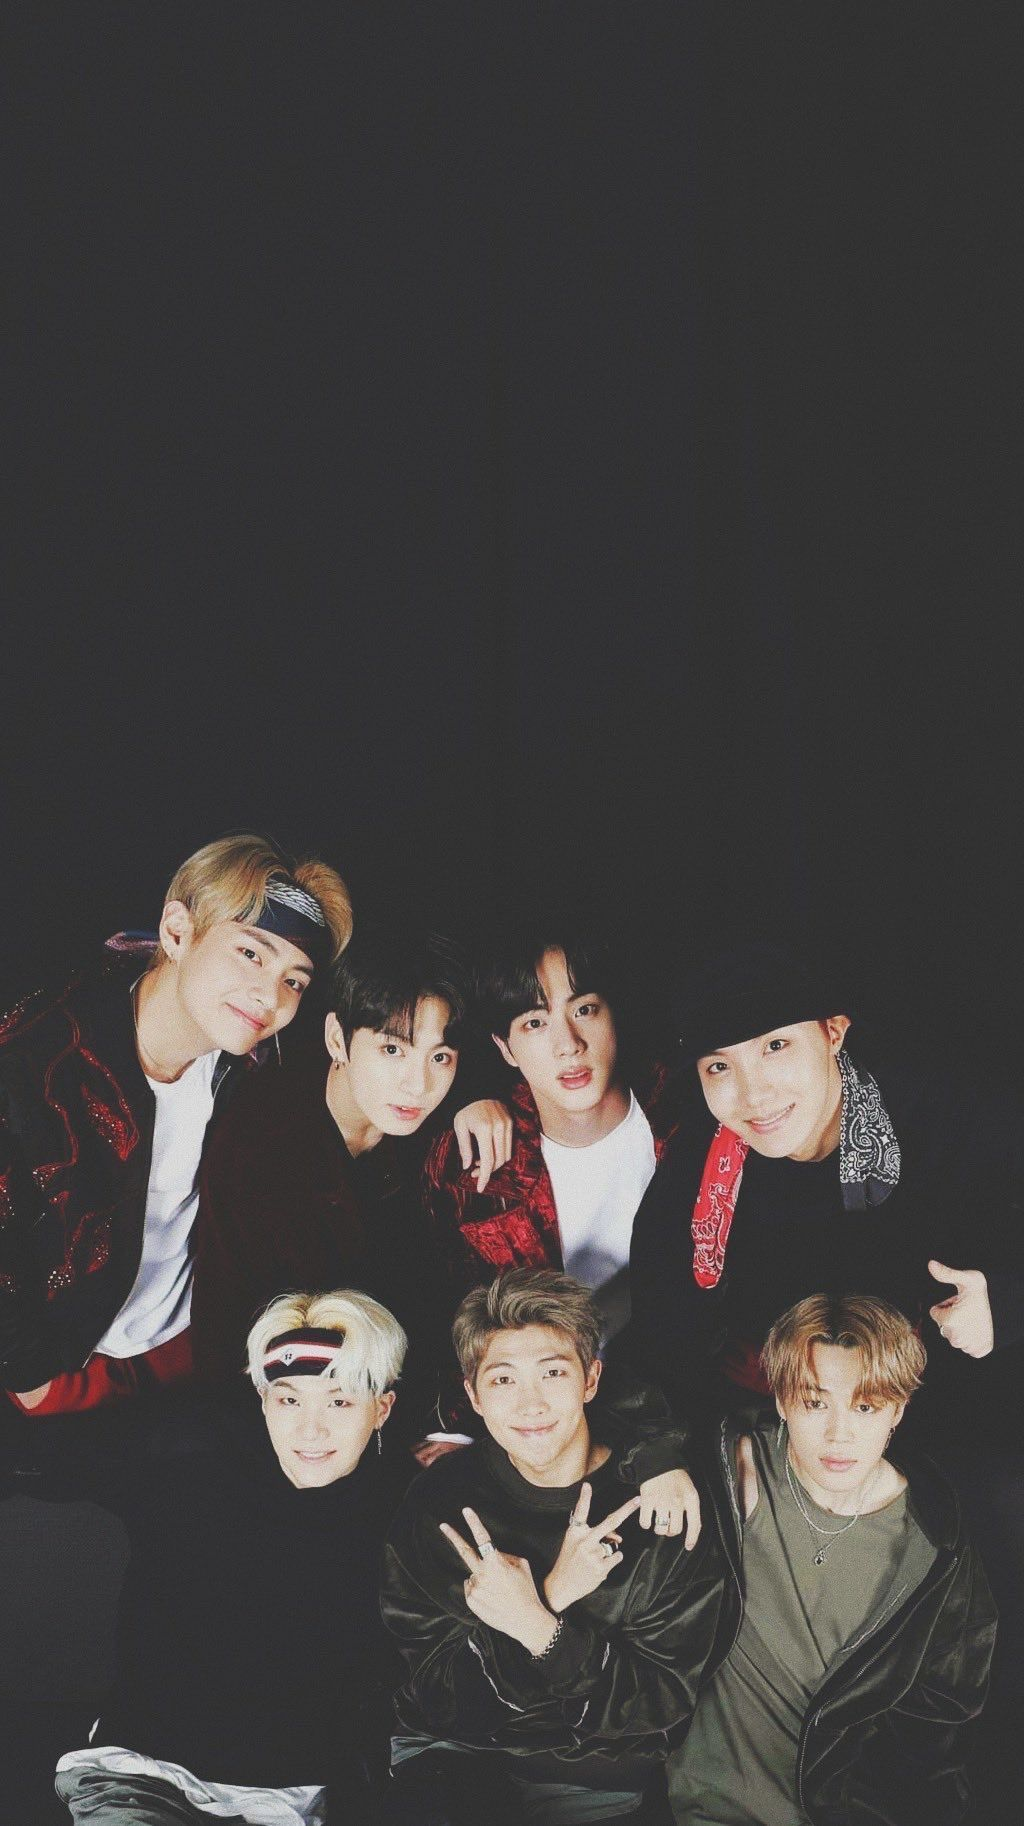 The Effective Pictures We Offer You About Bts Wallpaper Collage A Quality Picture Can Tell You Ma In 2020 Iphone Wallpaper Bts Bts Wallpaper Bts Spring Day Wallpaper